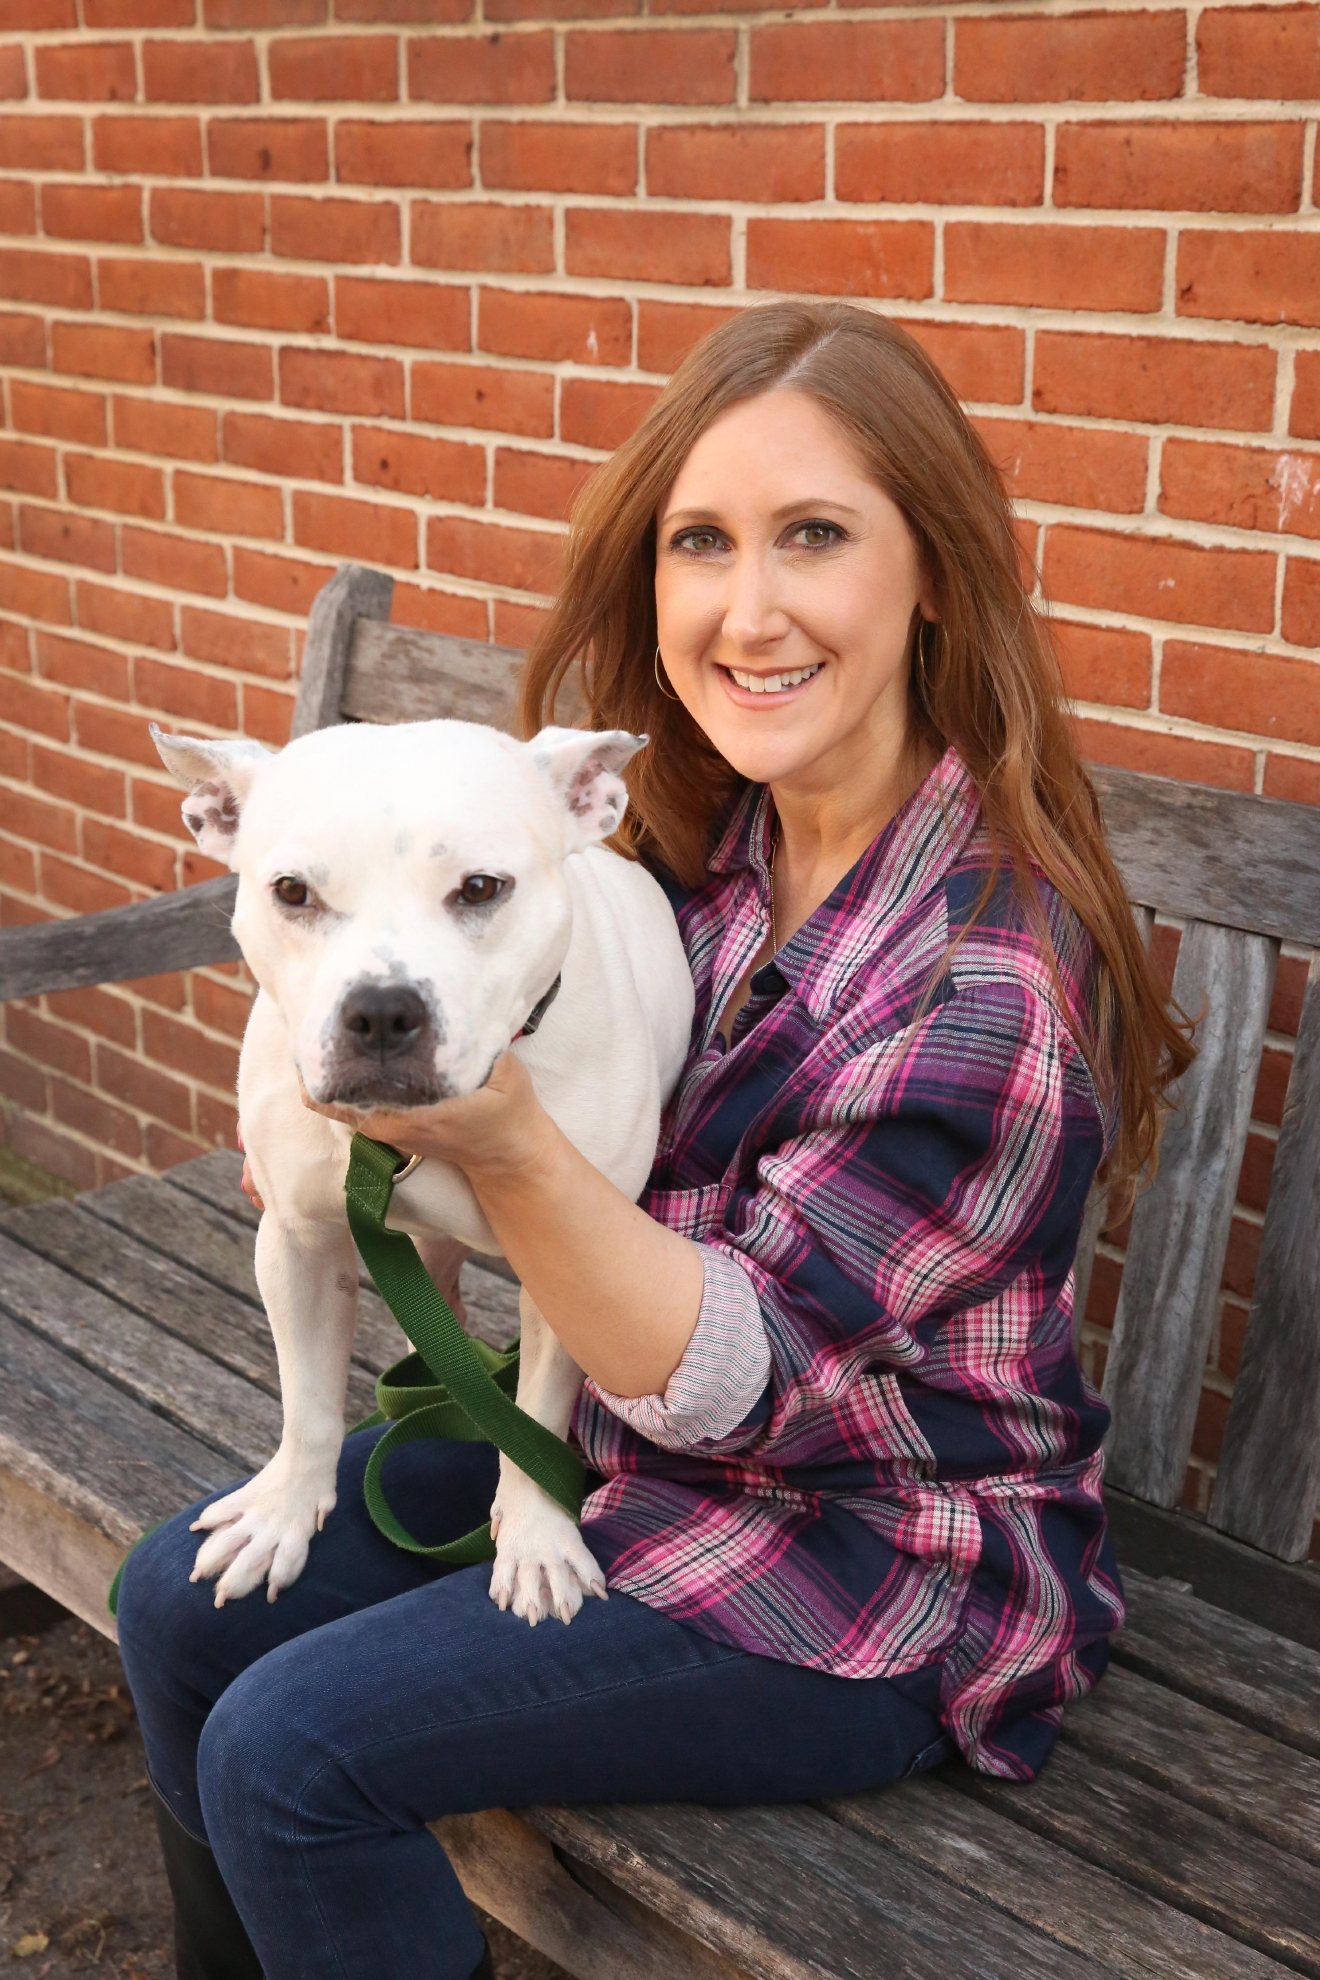 1-year-old Casey is available for adoption at the Humane Rescue Alliance's Oglethorpe location.  Megan Brickey| 35-years-old| Washington, D.C.| Contracting Officer (Amanda Andrade-Rhoades/DC Refined)